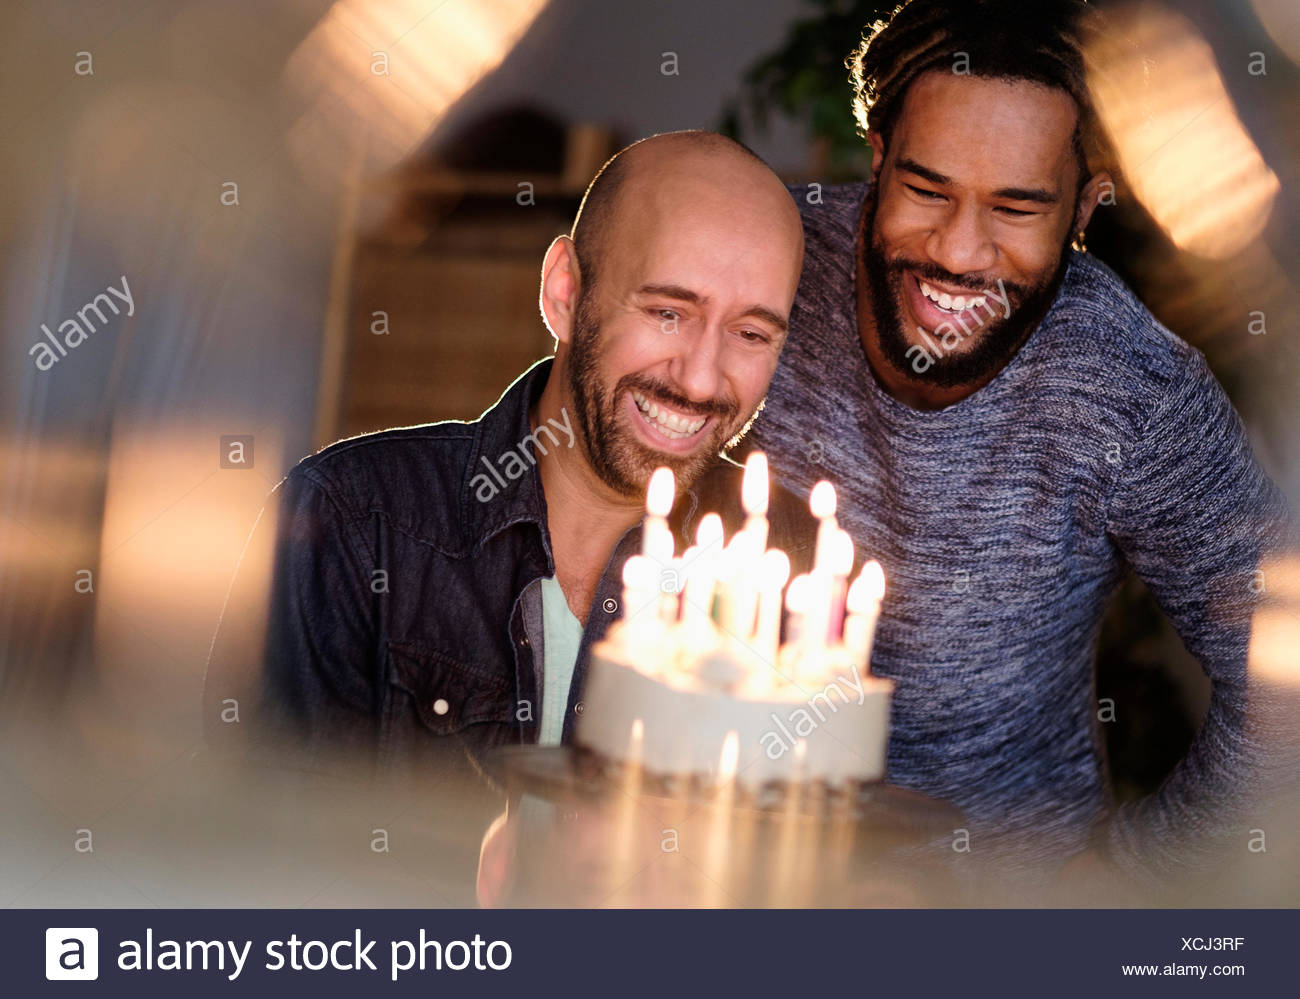 Smiley homosexual couple looking at birthday cake - Stock Image